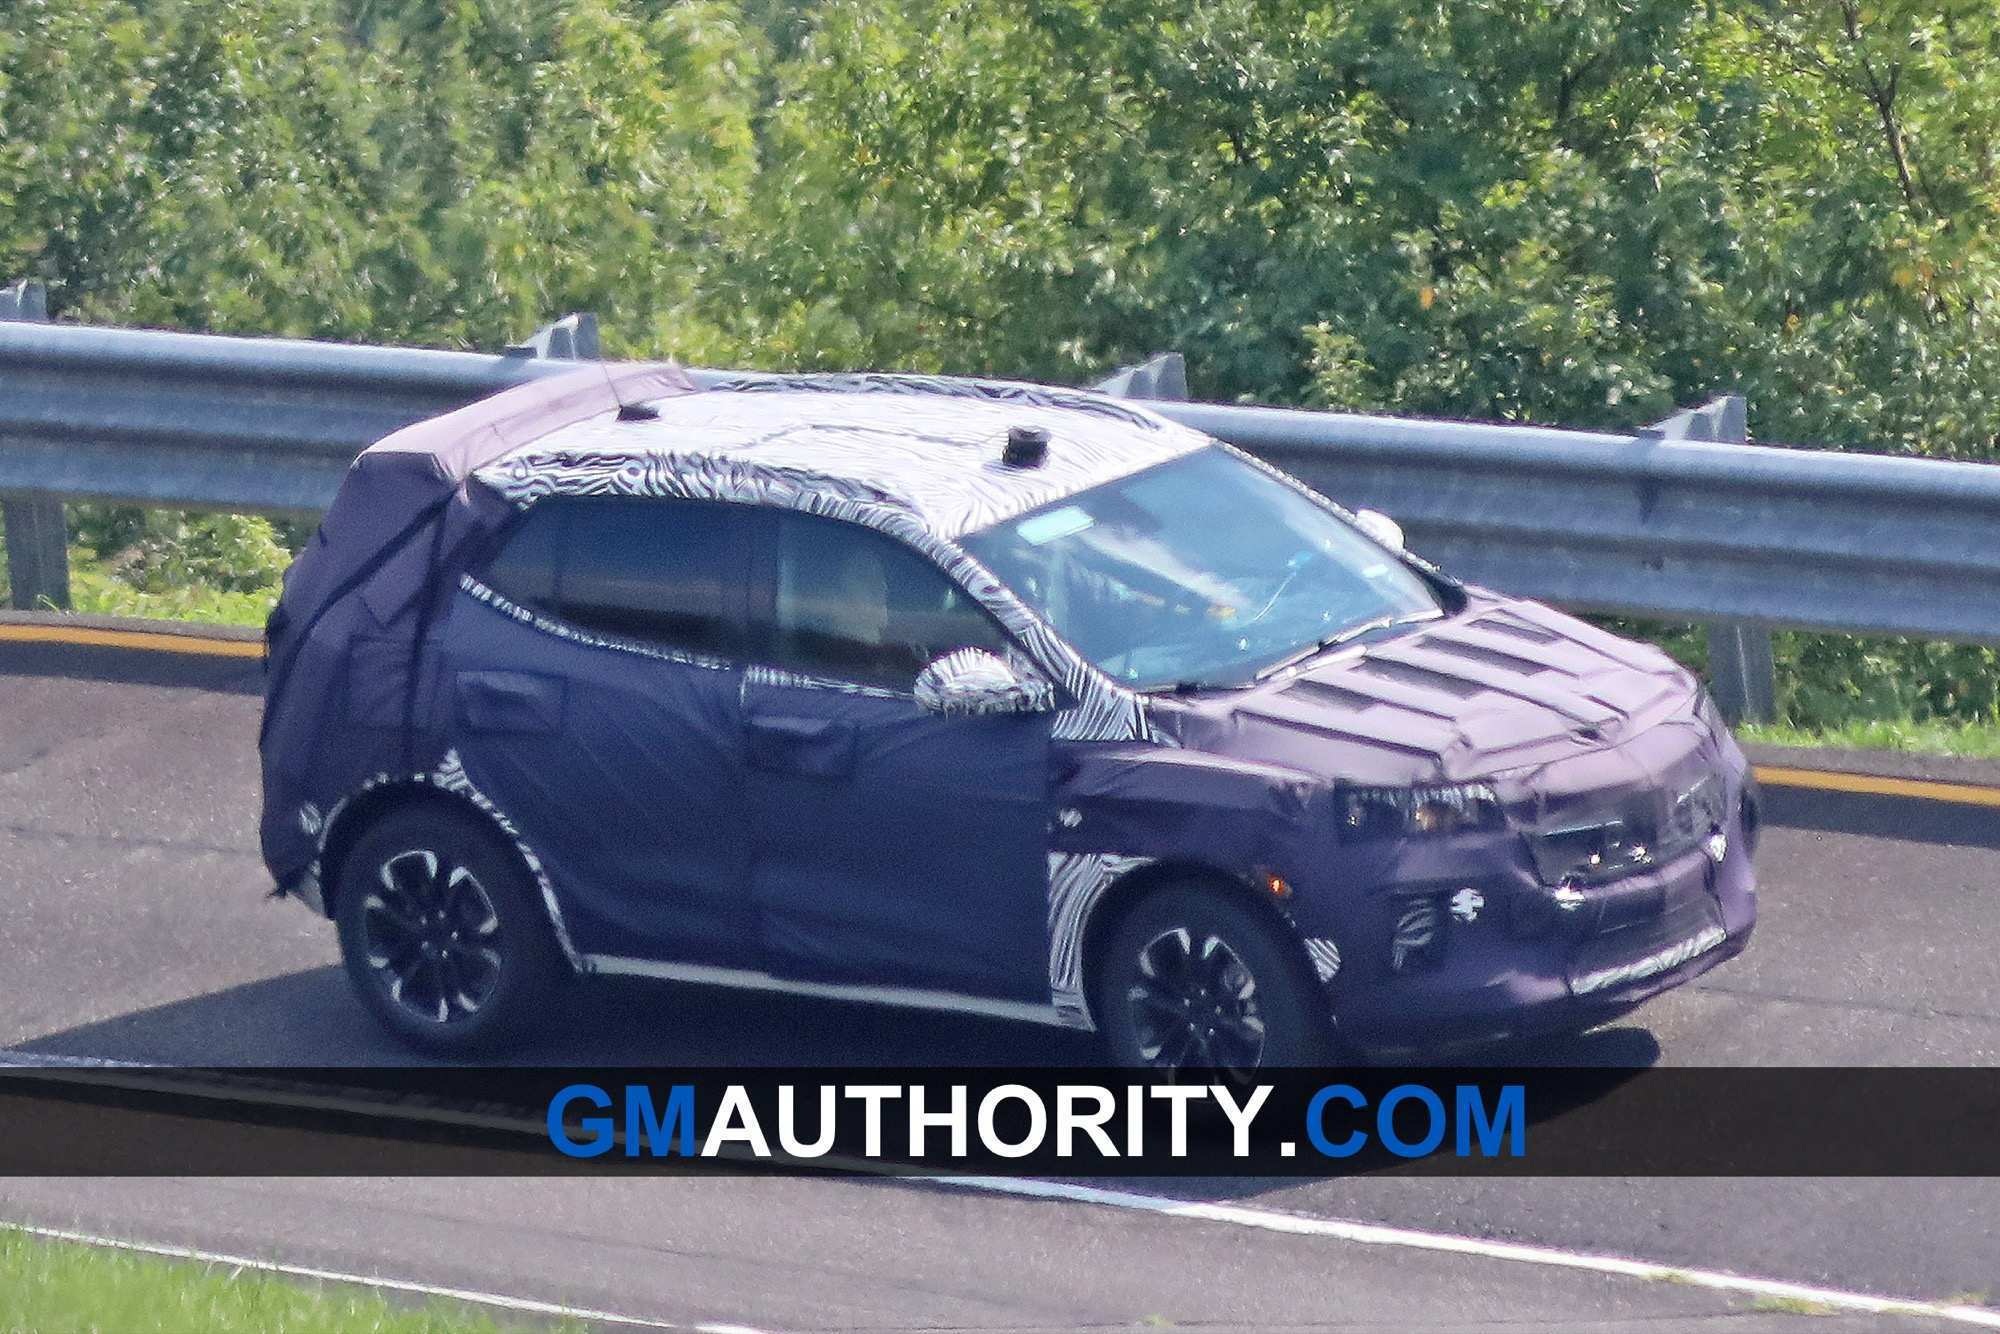 18 New 2020 Buick Enclave Spy Photos Release Date